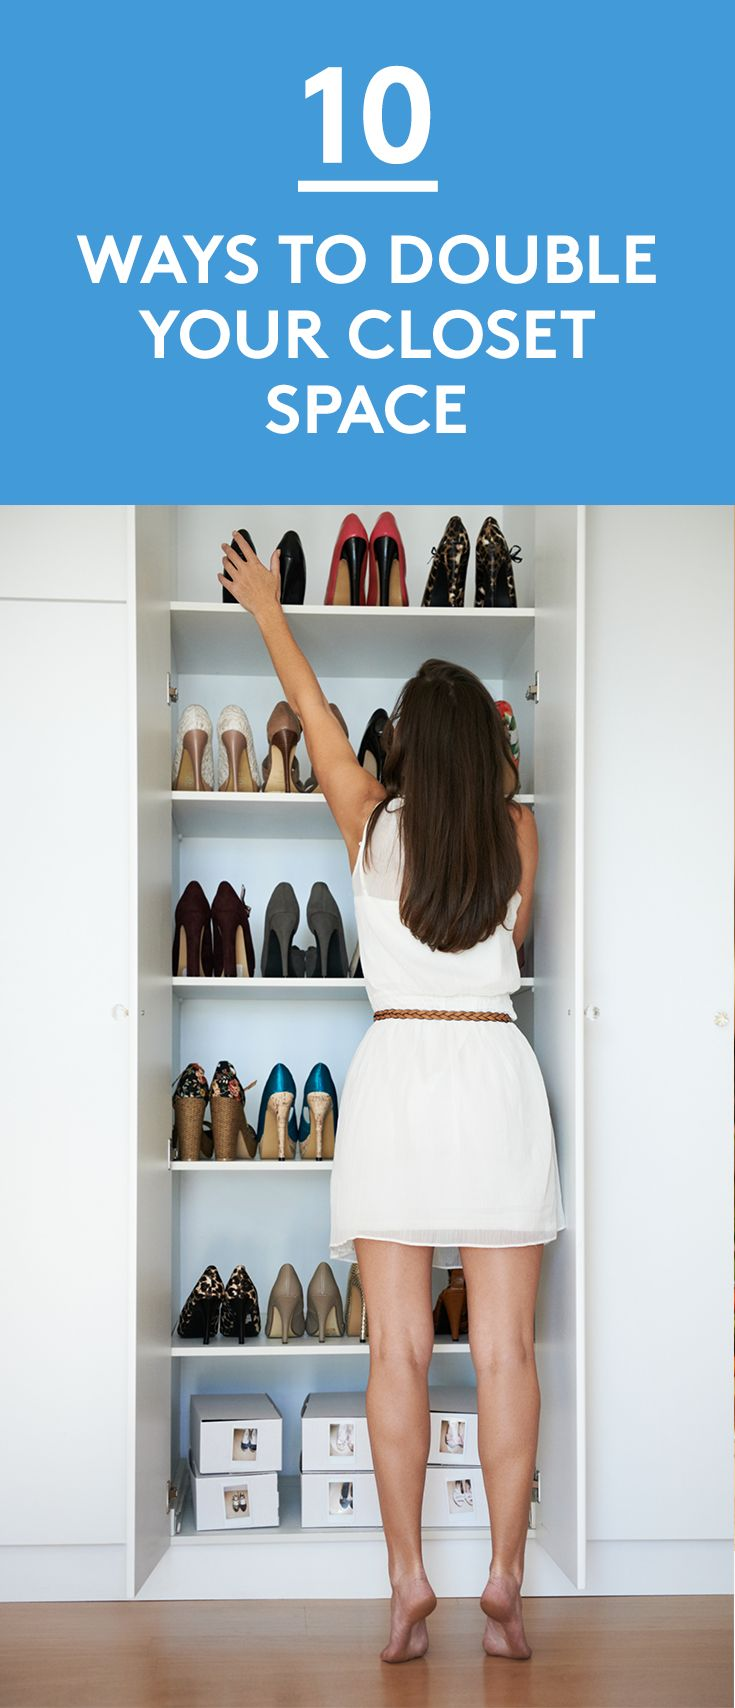 10 Ways to Double Your Closet Space   To maximize every square inch, we've rounded up some brilliant organizing techniques and the containers that make it easy to maintain them. With these strategies up your sleeve, your bedroom closet will feel surprisingly spacious.